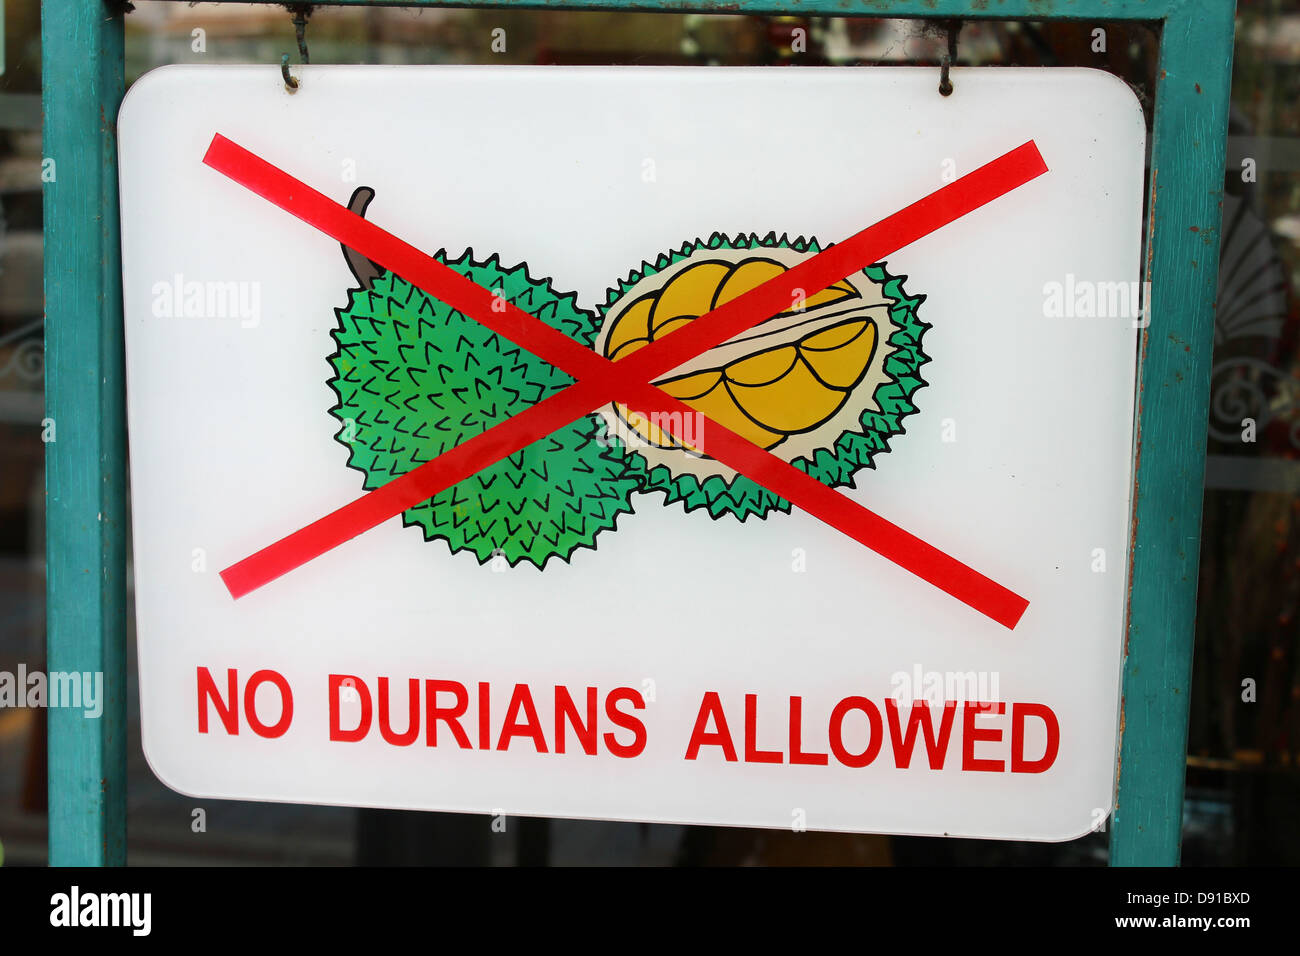 No Durians allowed sign, sign prohibiting durian fruit, Penang, Malaysia - Stock Image